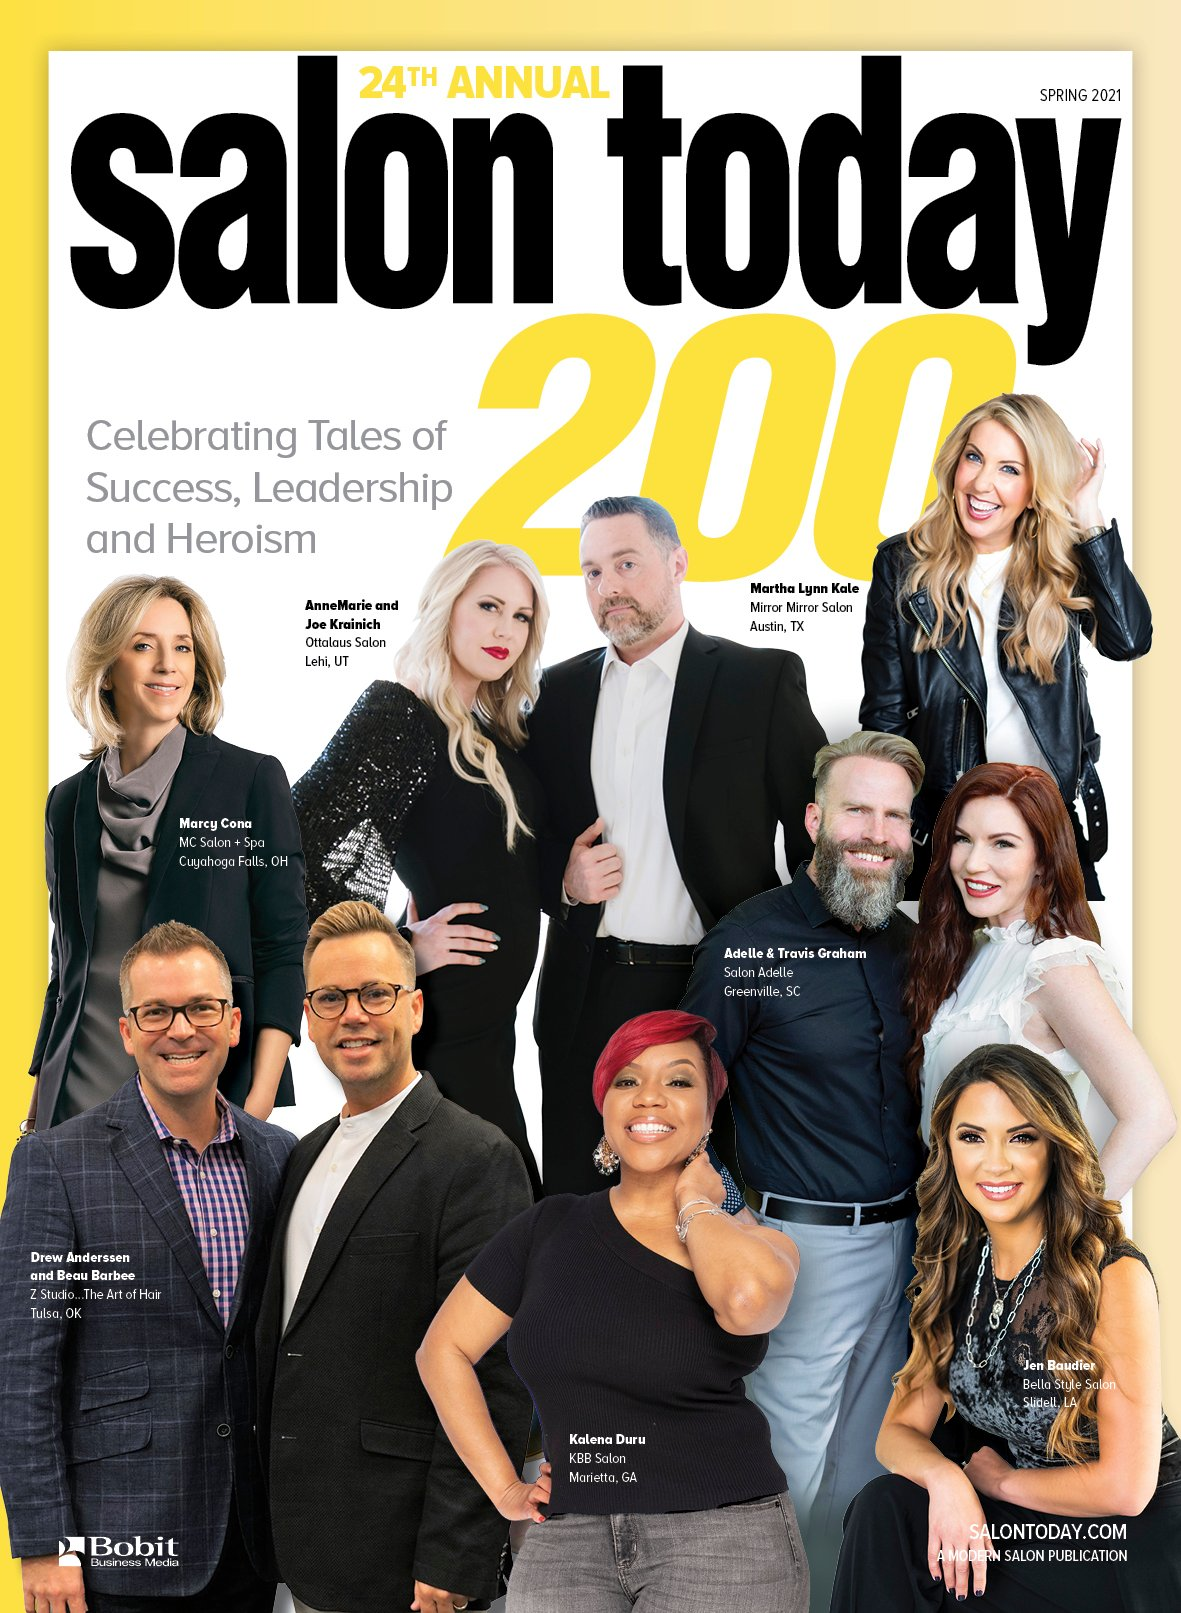 The SALON TODAY 200 Application is LIVE!